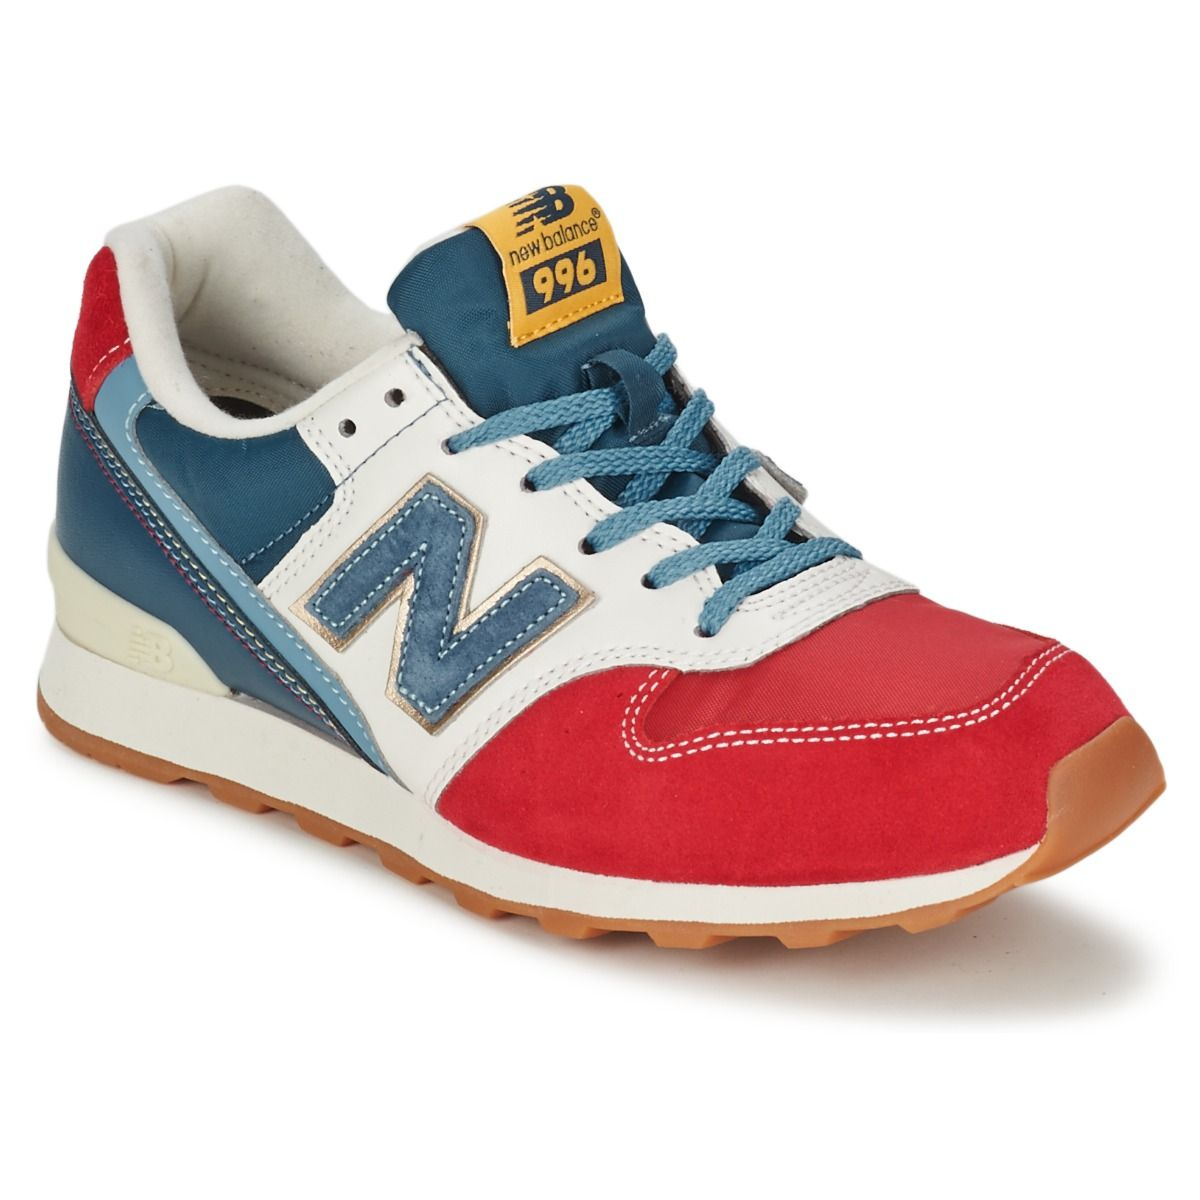 9e50ac598e30 Baskets basses New Balance WR996 - Baskets Femme Spartoo - Ventes ...